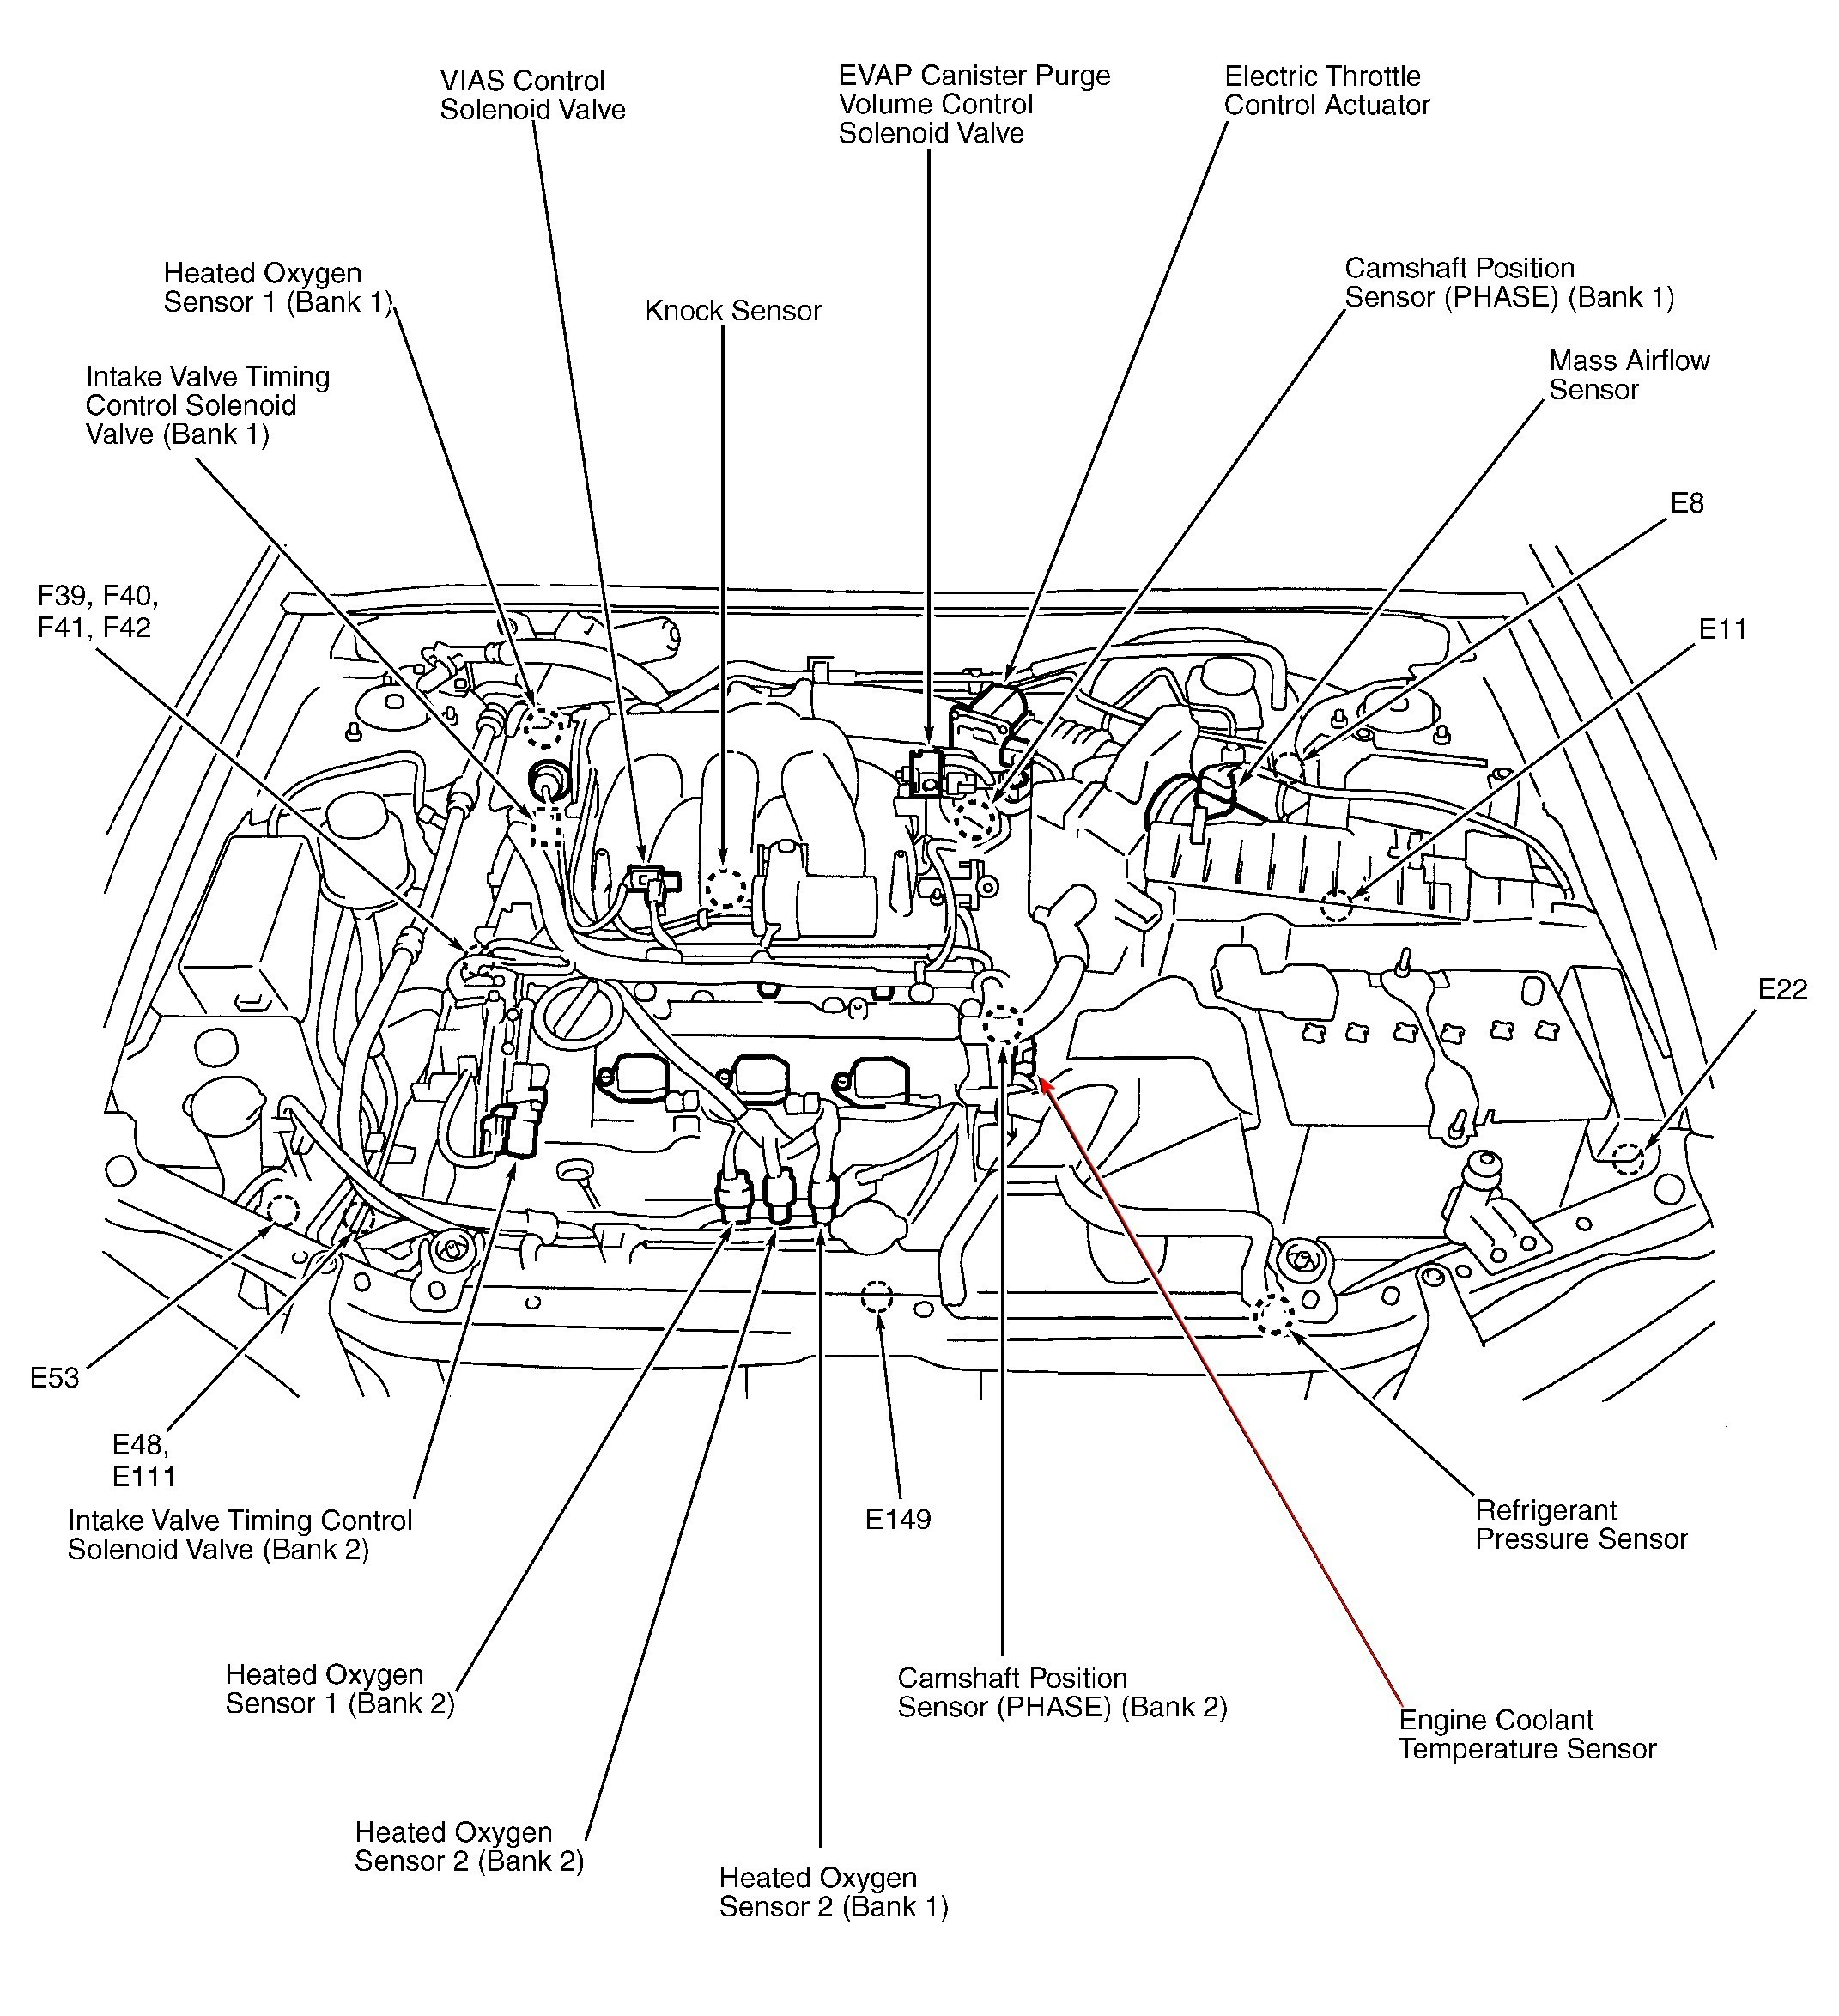 wiring diagram for 2005 nissan murano data wiring diagram Wiring Diagram for 1998 Nissan Frontier